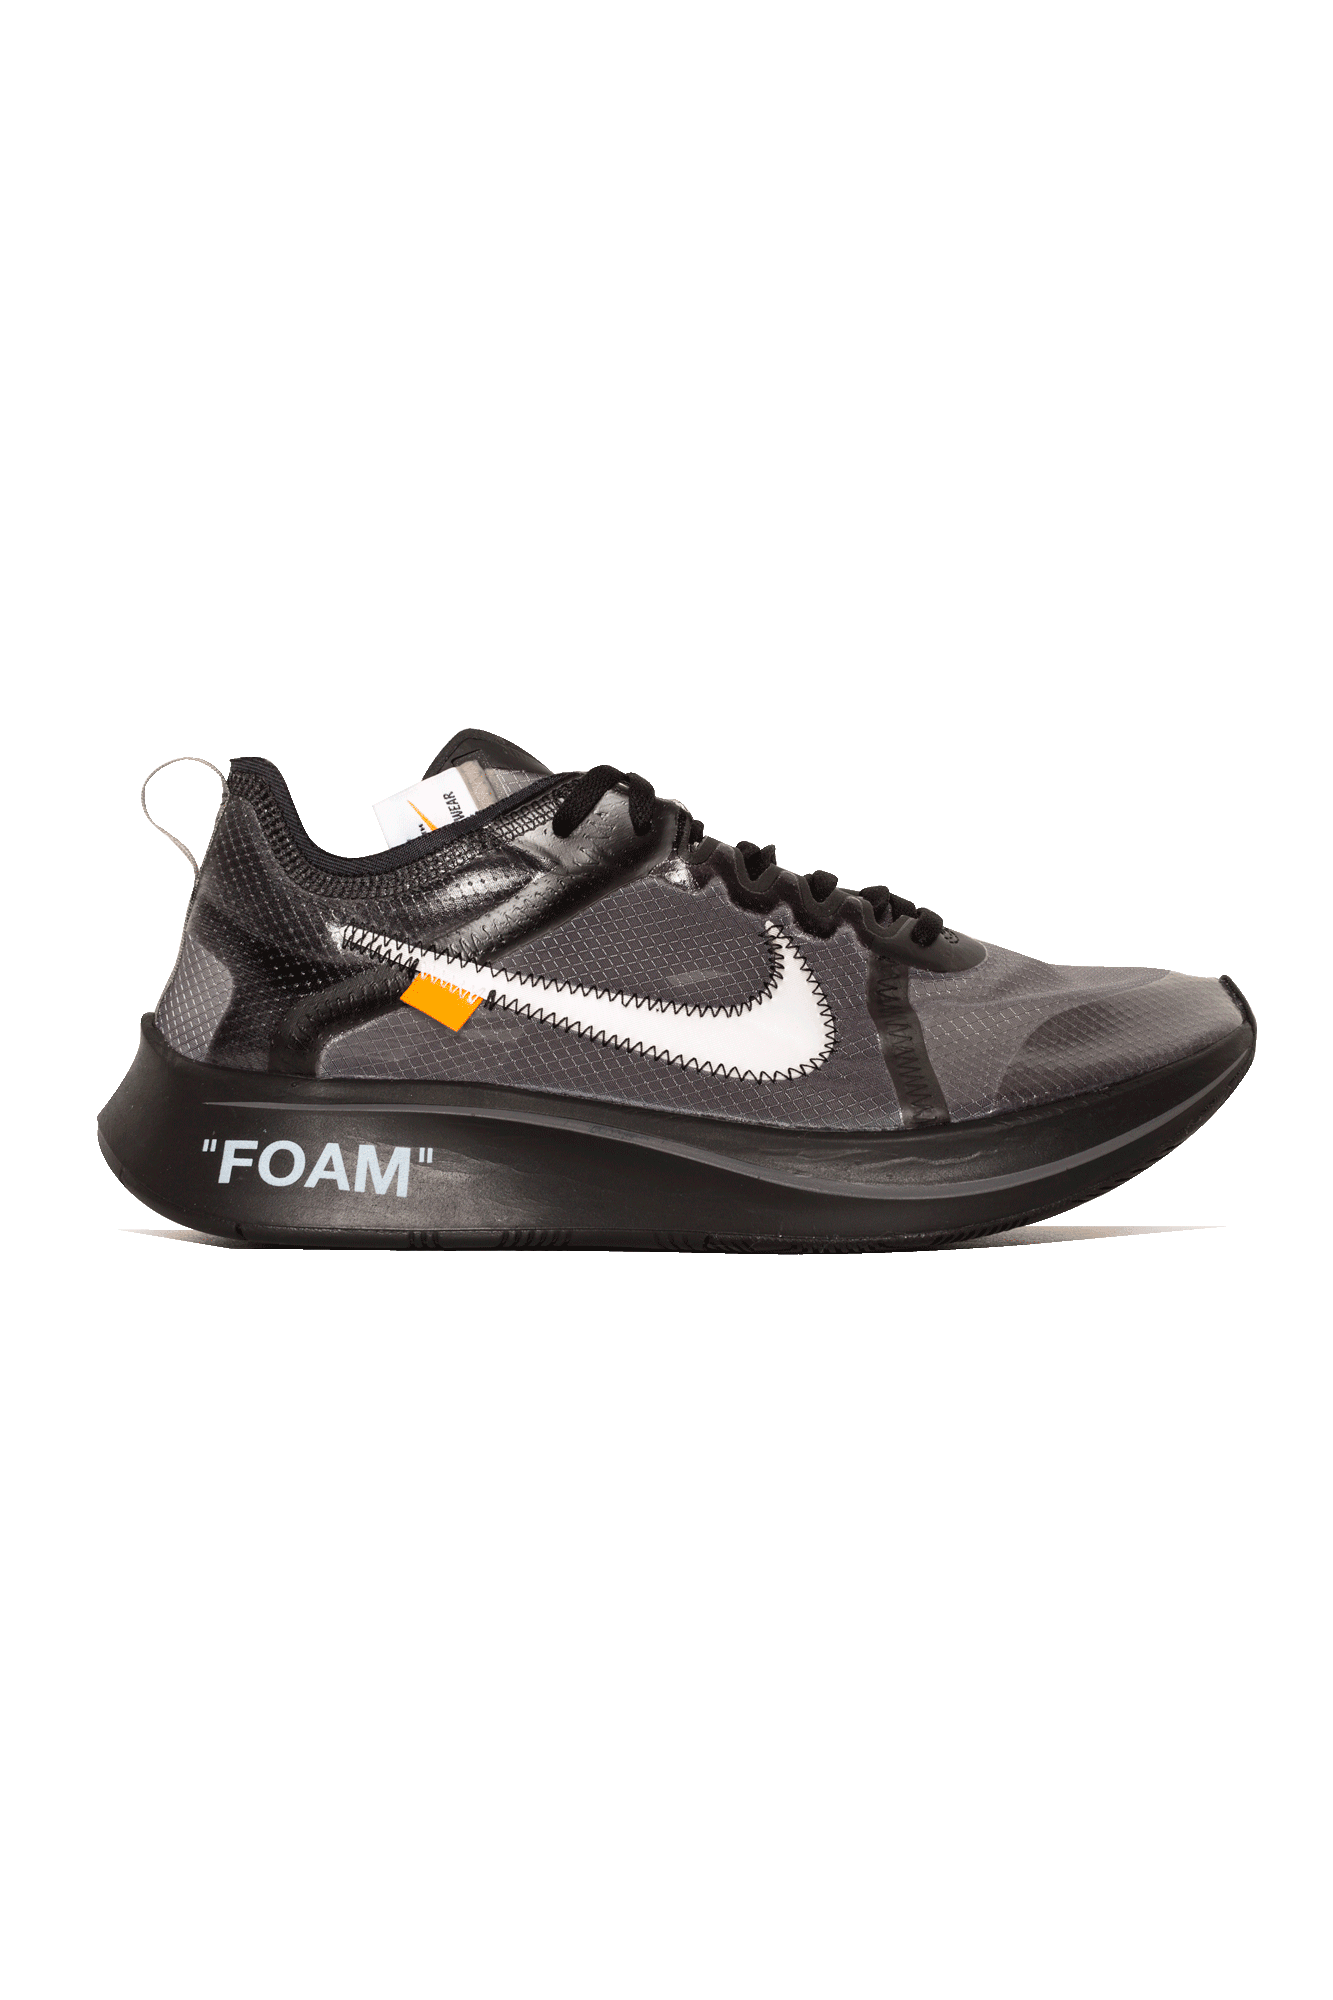 Nike Trainers The 10 : Zoom Fly Black - One Block Down